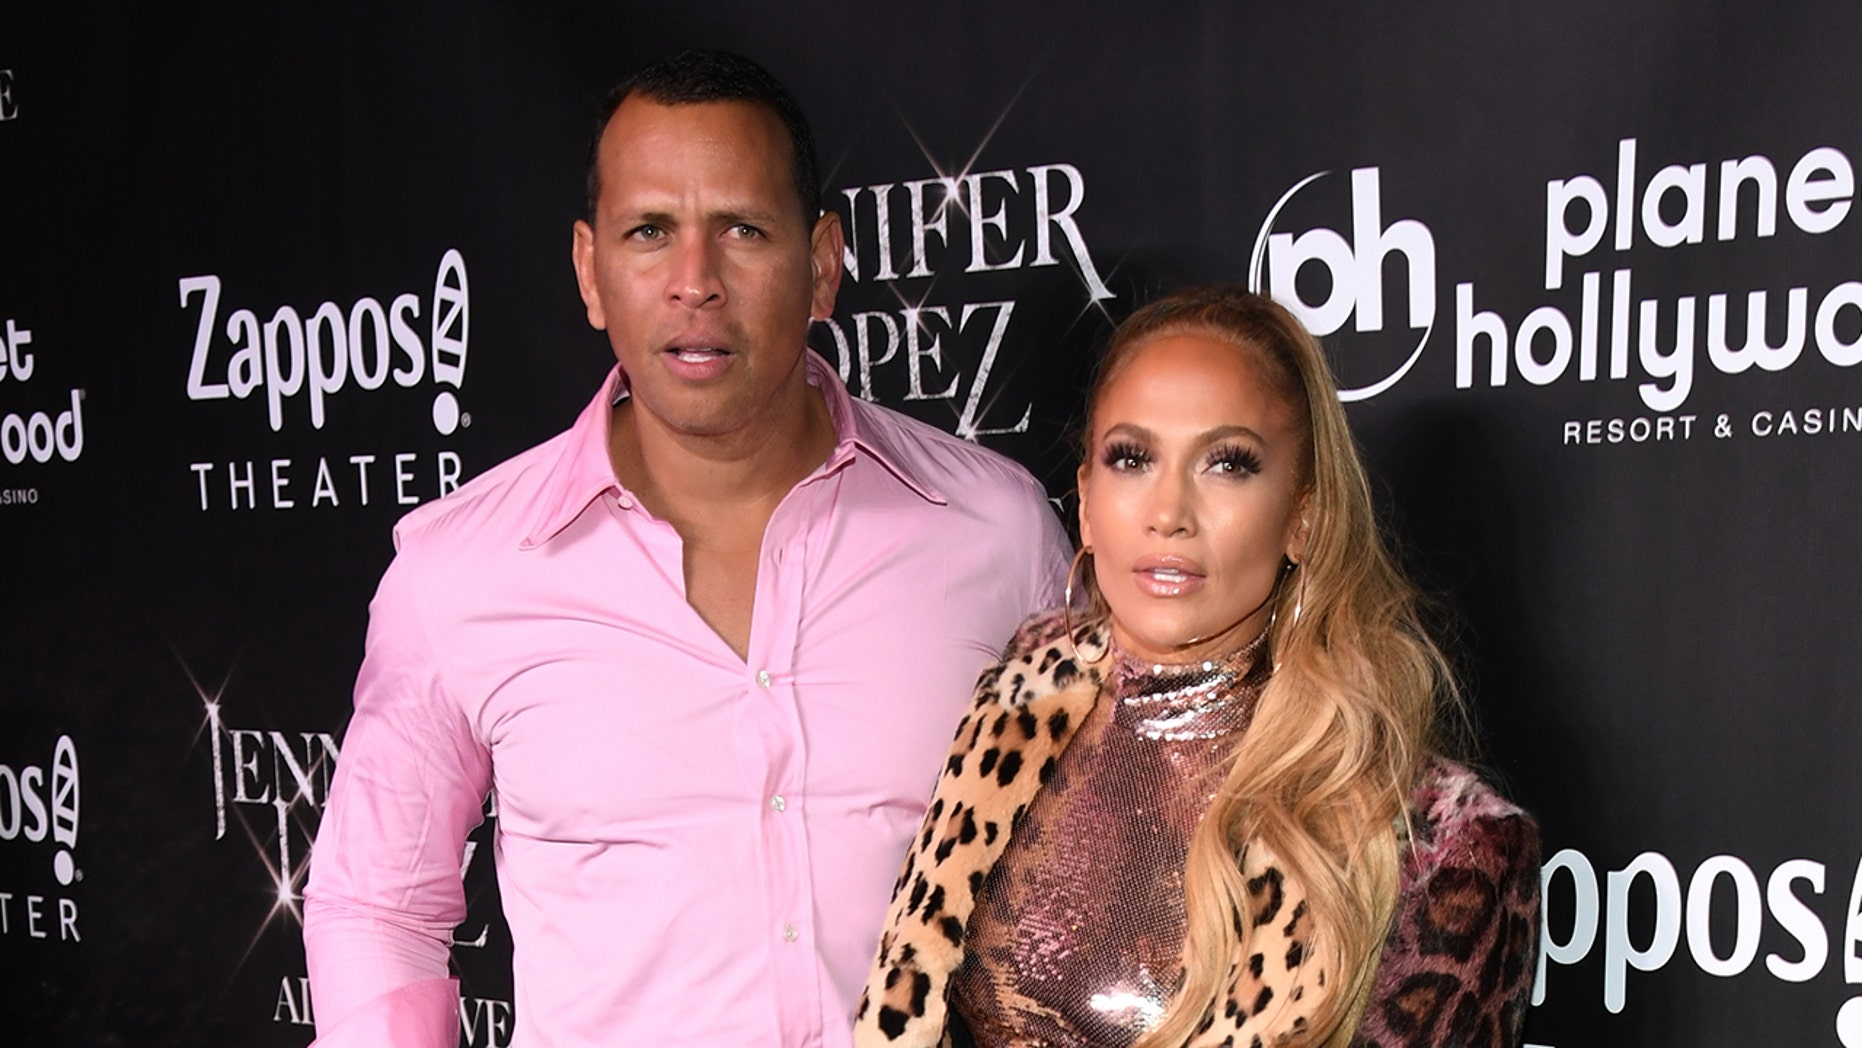 Alex Rodriguez shared a video of his girlfriend Jennifer Lopez wearing a big diamond sparklier on social media. (Photo by Ethan Miller/Getty Images for Caesars Entertainment)